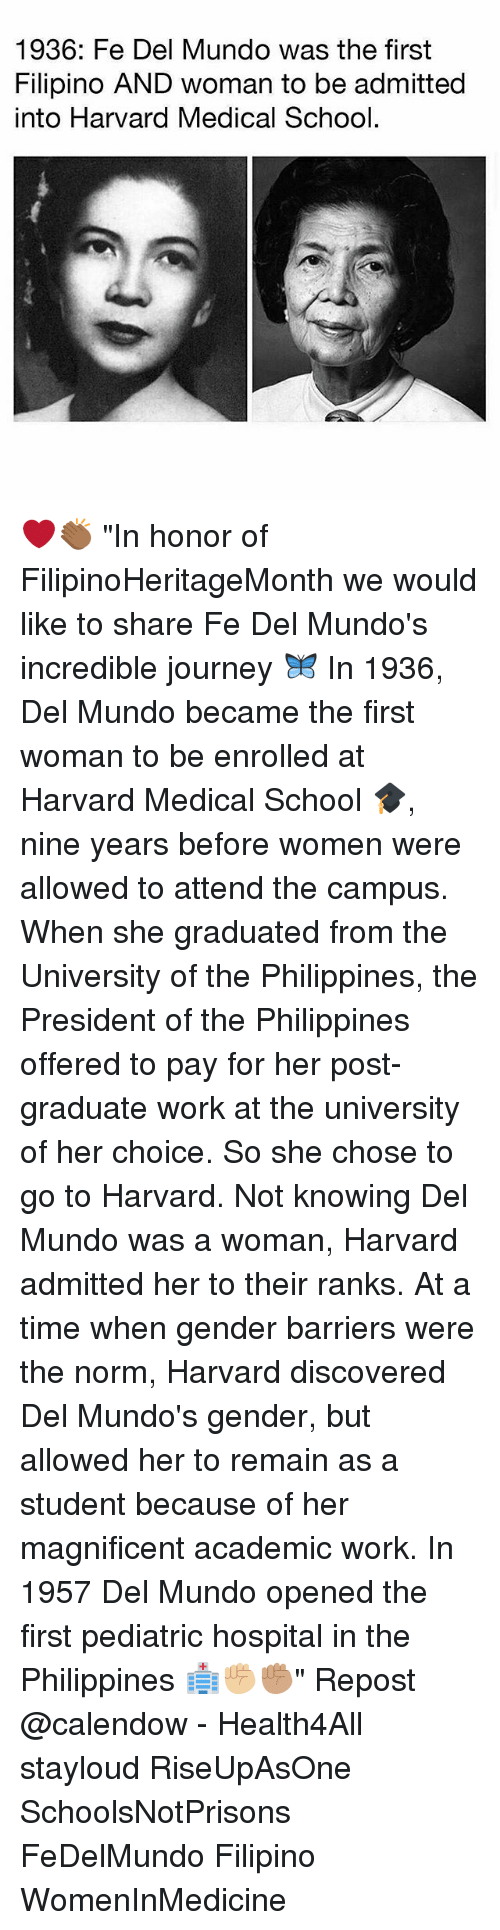 """Journey, Memes, and School: 1936: Fe Del Mundo was the first  Filipino AND woman to be admitted  into Harvard Medical School ❤️👏🏾 """"In honor of FilipinoHeritageMonth we would like to share Fe Del Mundo's incredible journey 🦋 In 1936, Del Mundo became the first woman to be enrolled at Harvard Medical School 🎓, nine years before women were allowed to attend the campus. When she graduated from the University of the Philippines, the President of the Philippines offered to pay for her post-graduate work at the university of her choice. So she chose to go to Harvard. Not knowing Del Mundo was a woman, Harvard admitted her to their ranks. At a time when gender barriers were the norm, Harvard discovered Del Mundo's gender, but allowed her to remain as a student because of her magnificent academic work. In 1957 Del Mundo opened the first pediatric hospital in the Philippines 🏥✊🏼✊🏽"""" Repost @calendow - Health4All stayloud RiseUpAsOne SchoolsNotPrisons FeDelMundo Filipino WomenInMedicine"""